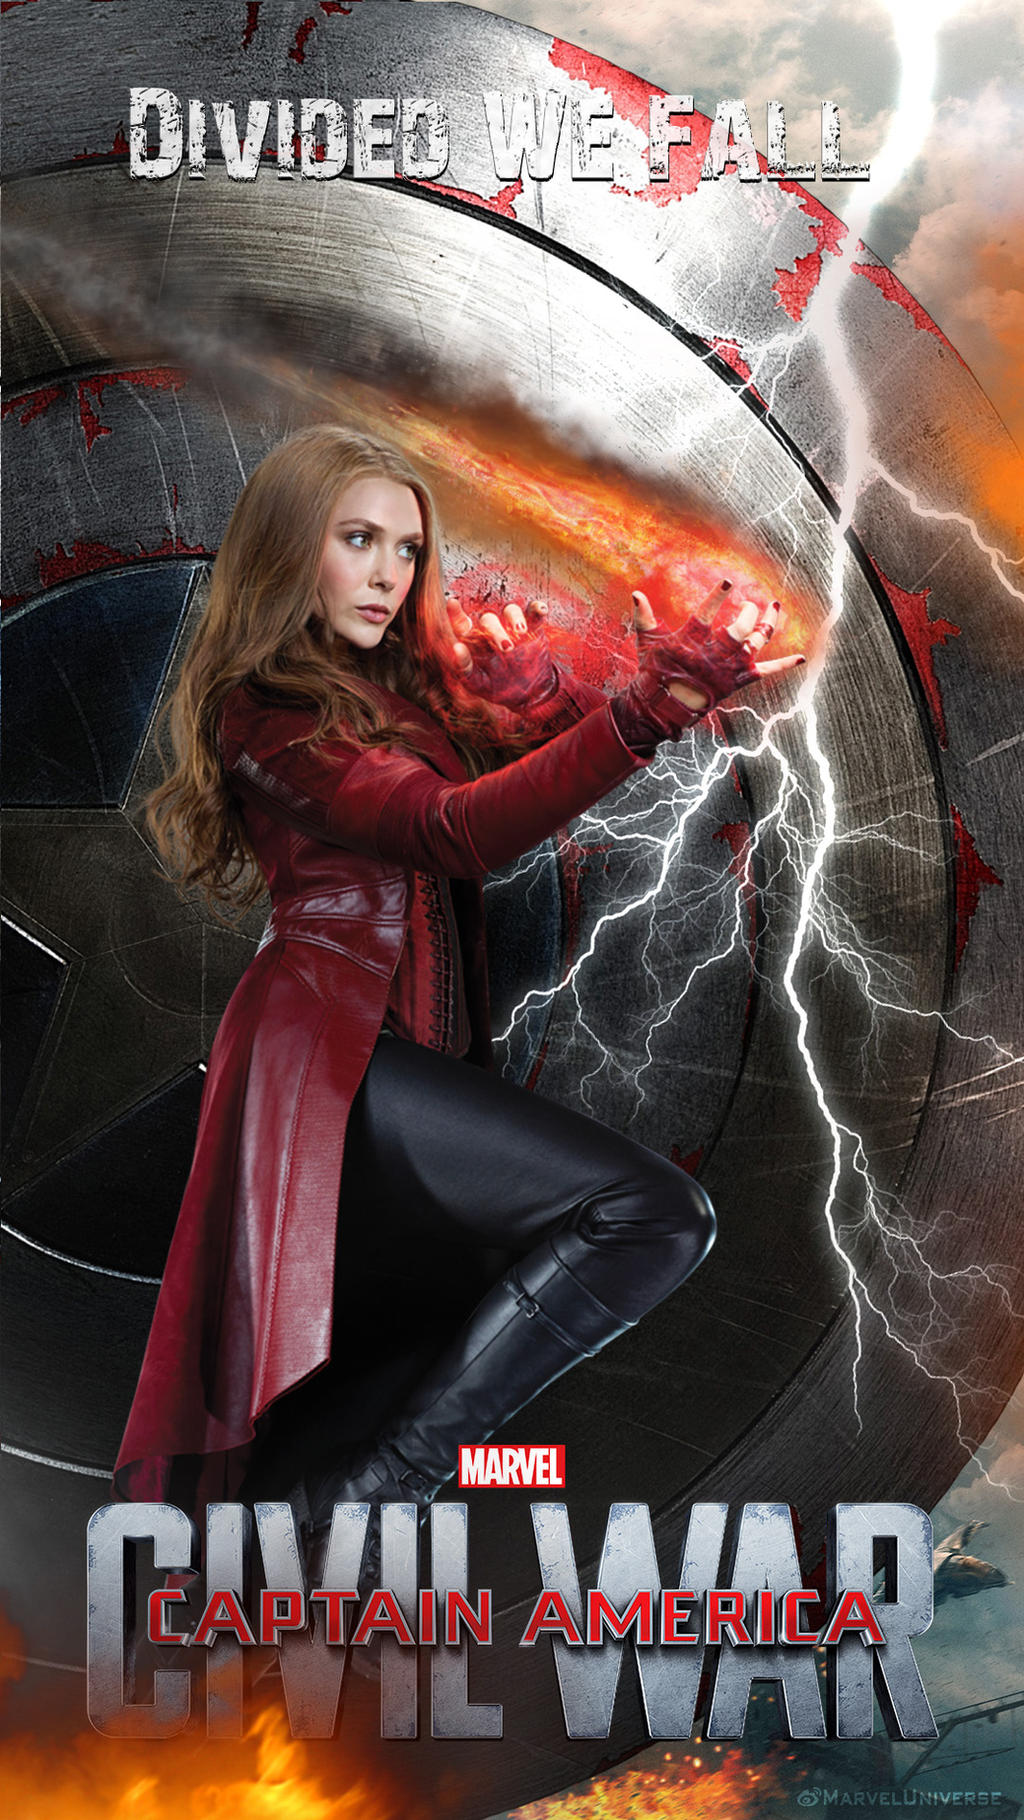 Good Wallpaper Marvel Scarlet Witch - captain_america_civil_war_wallpapers_by_chenshijie9095-d9x6h10  Pic_628668.jpg